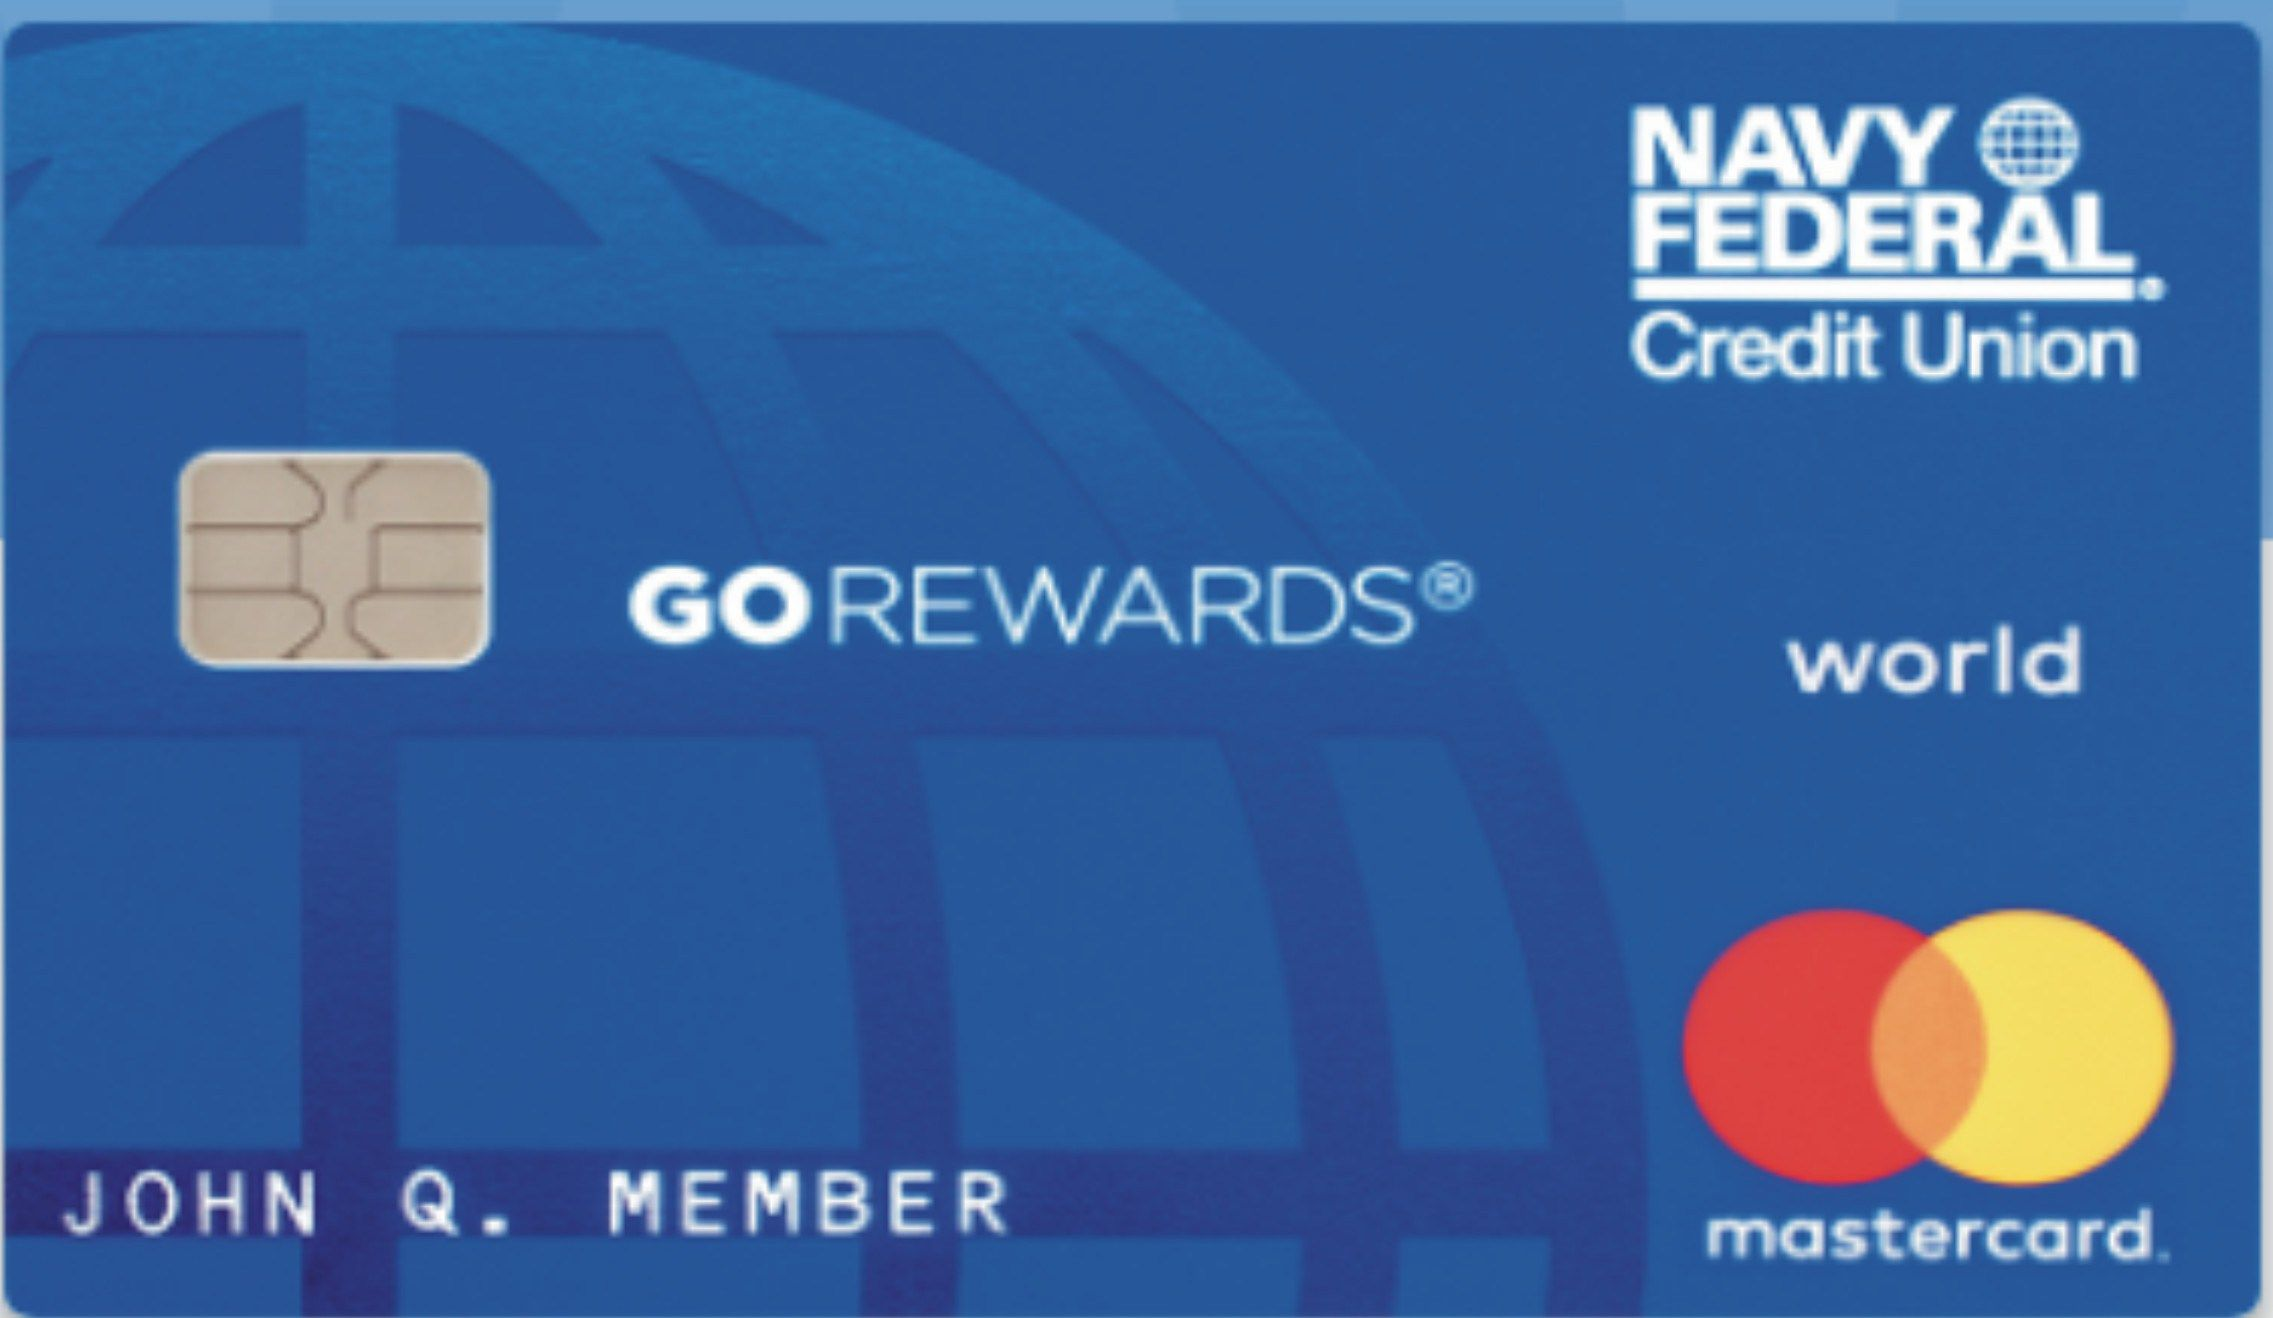 Go Rewards Credit Card Best Travel Rewards Credit Card Travel Rewards Credit Cards Rewards Credit Cards Bank Credit Cards